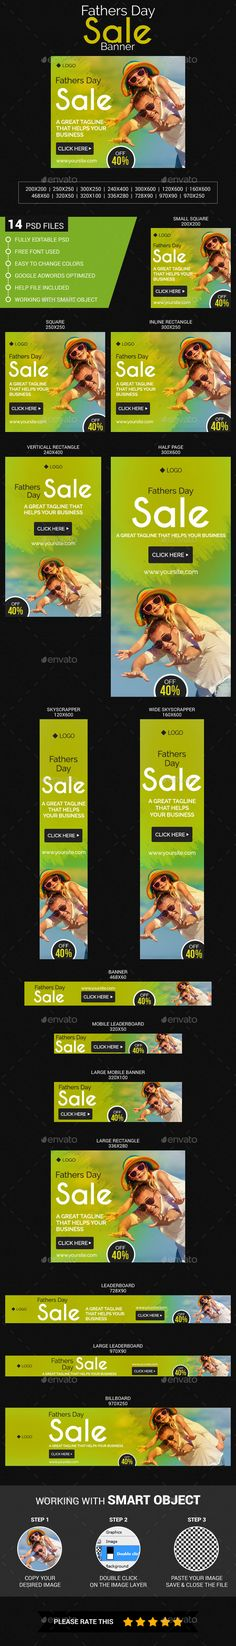 #Fathers #Day #Sale #banner #template - #Banners & #Ads #Web #Elements #design. download here: https://graphicriver.net/item/fathers-day-sale/20100049?ref=yinkira